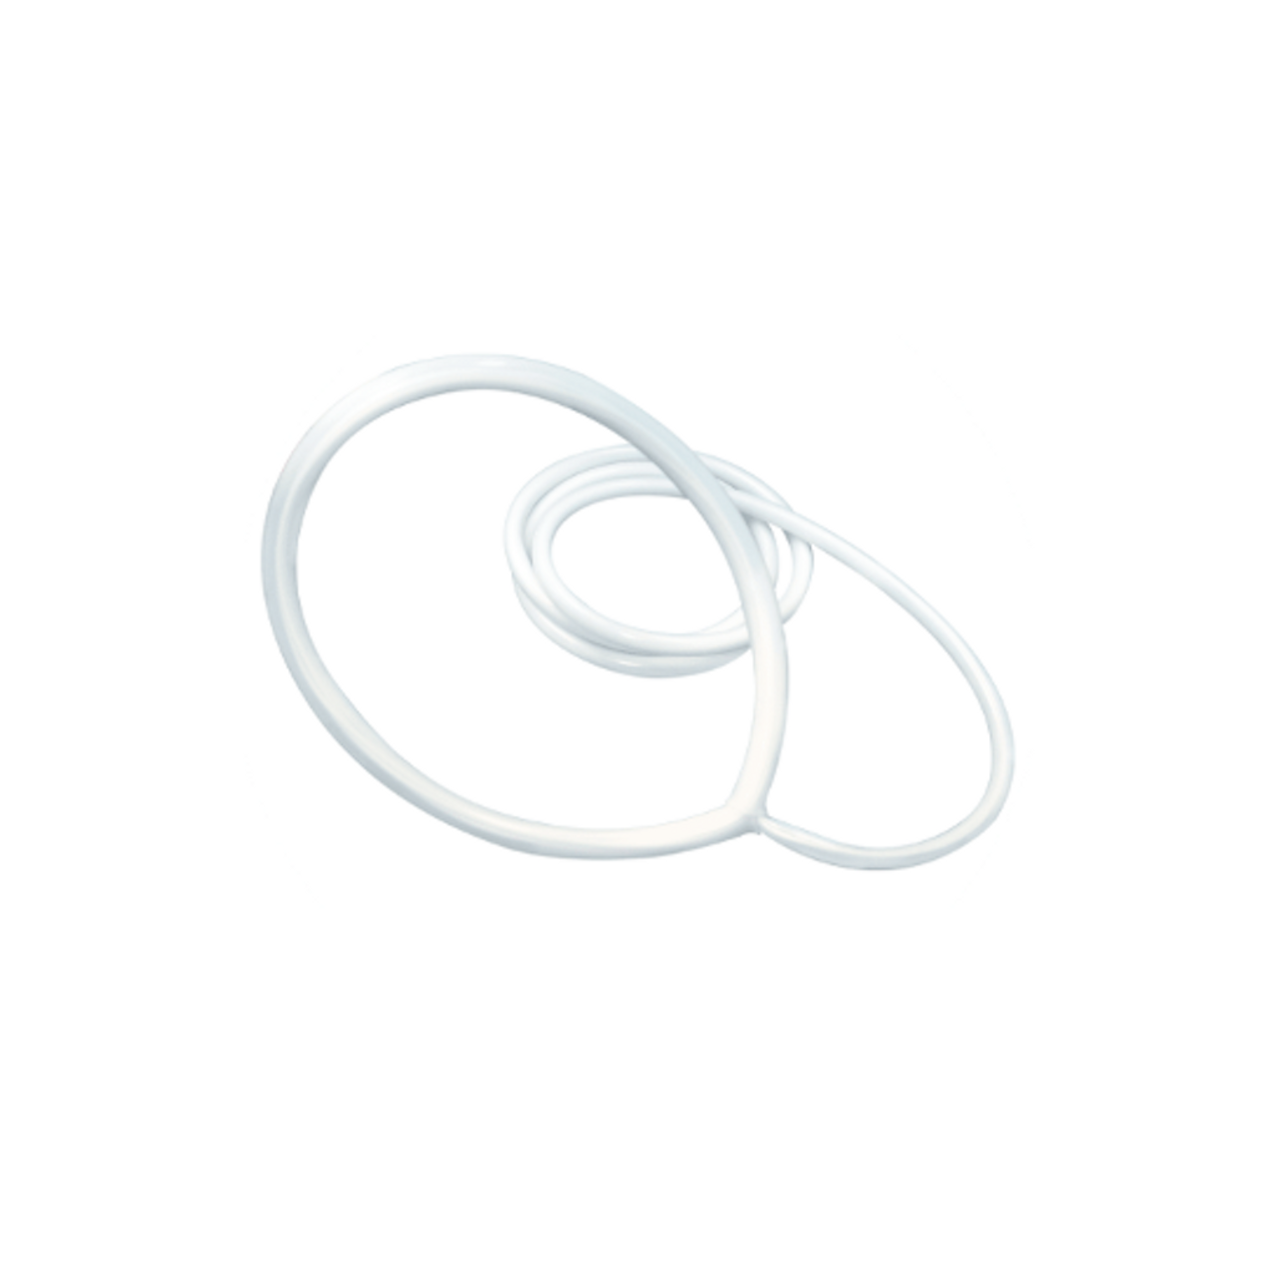 The large round loop is for treating more area on the body. The Large Loop comes with a 12′ lead.